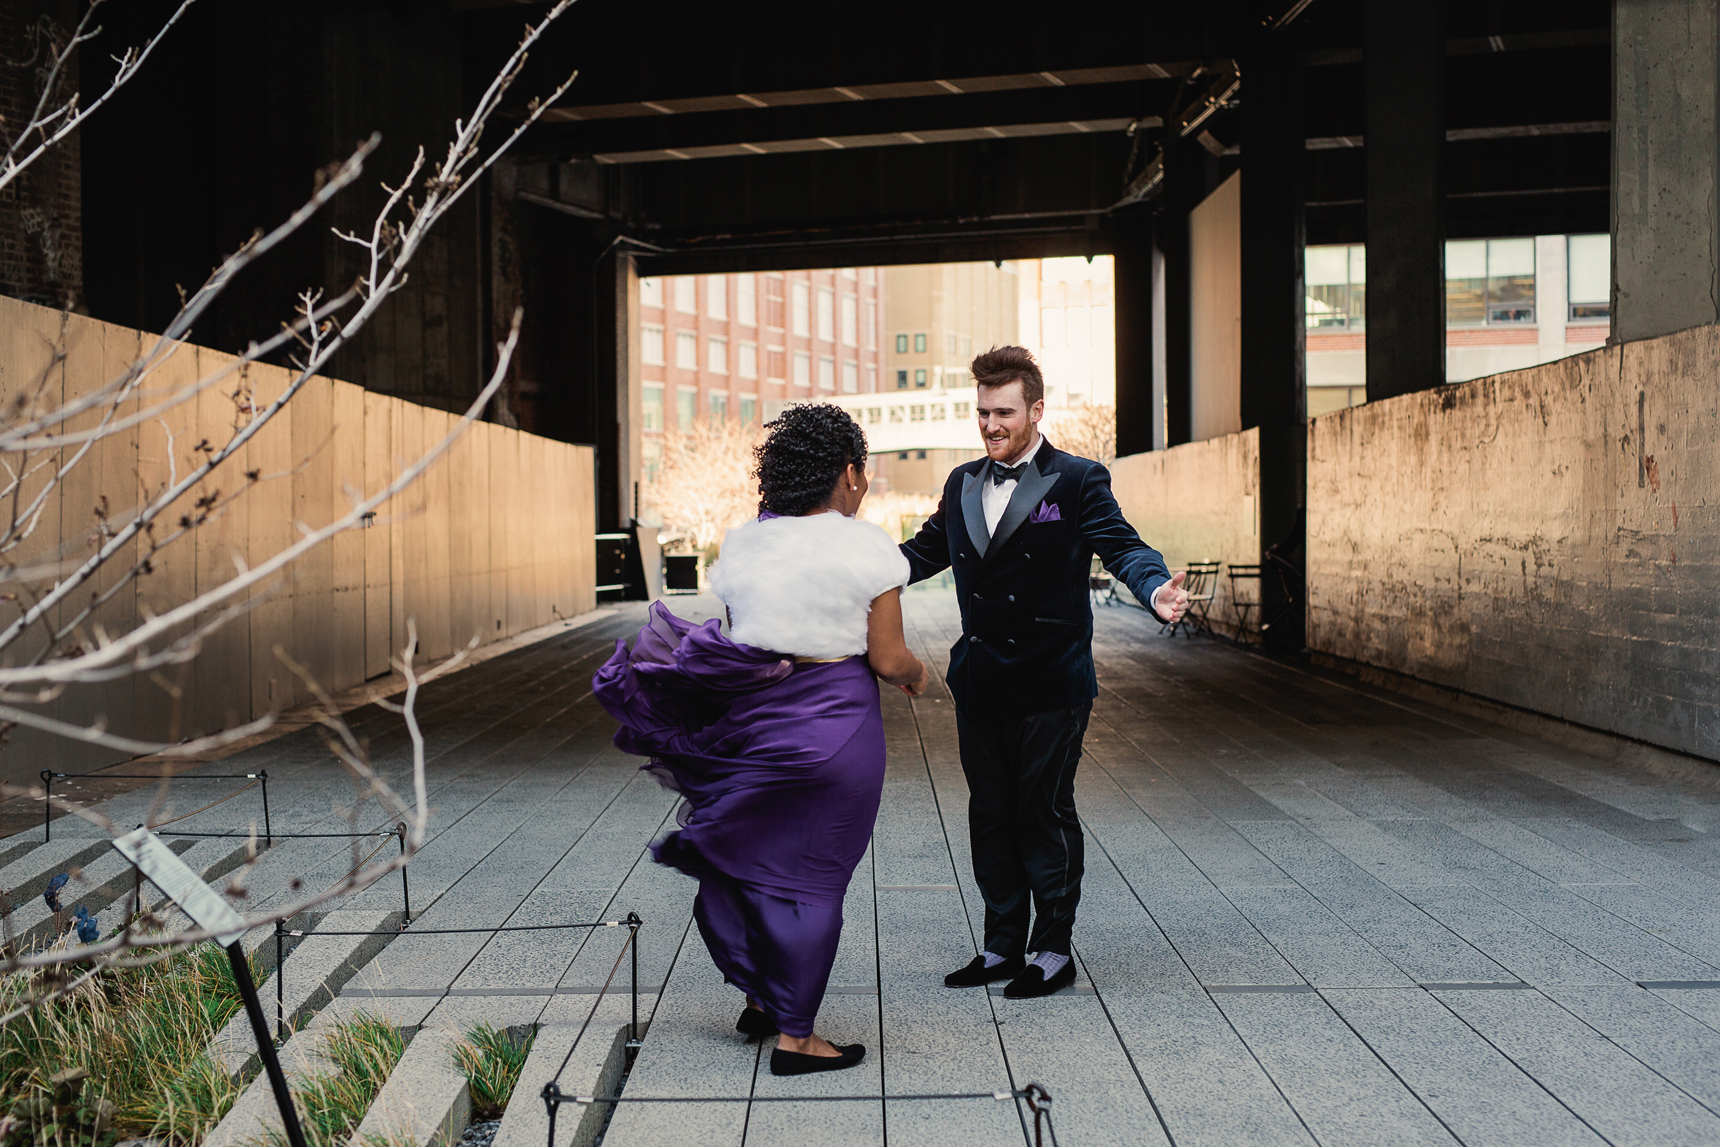 KP_BrooklynWinery_Wedding_NewYork_Photographer050.jpg